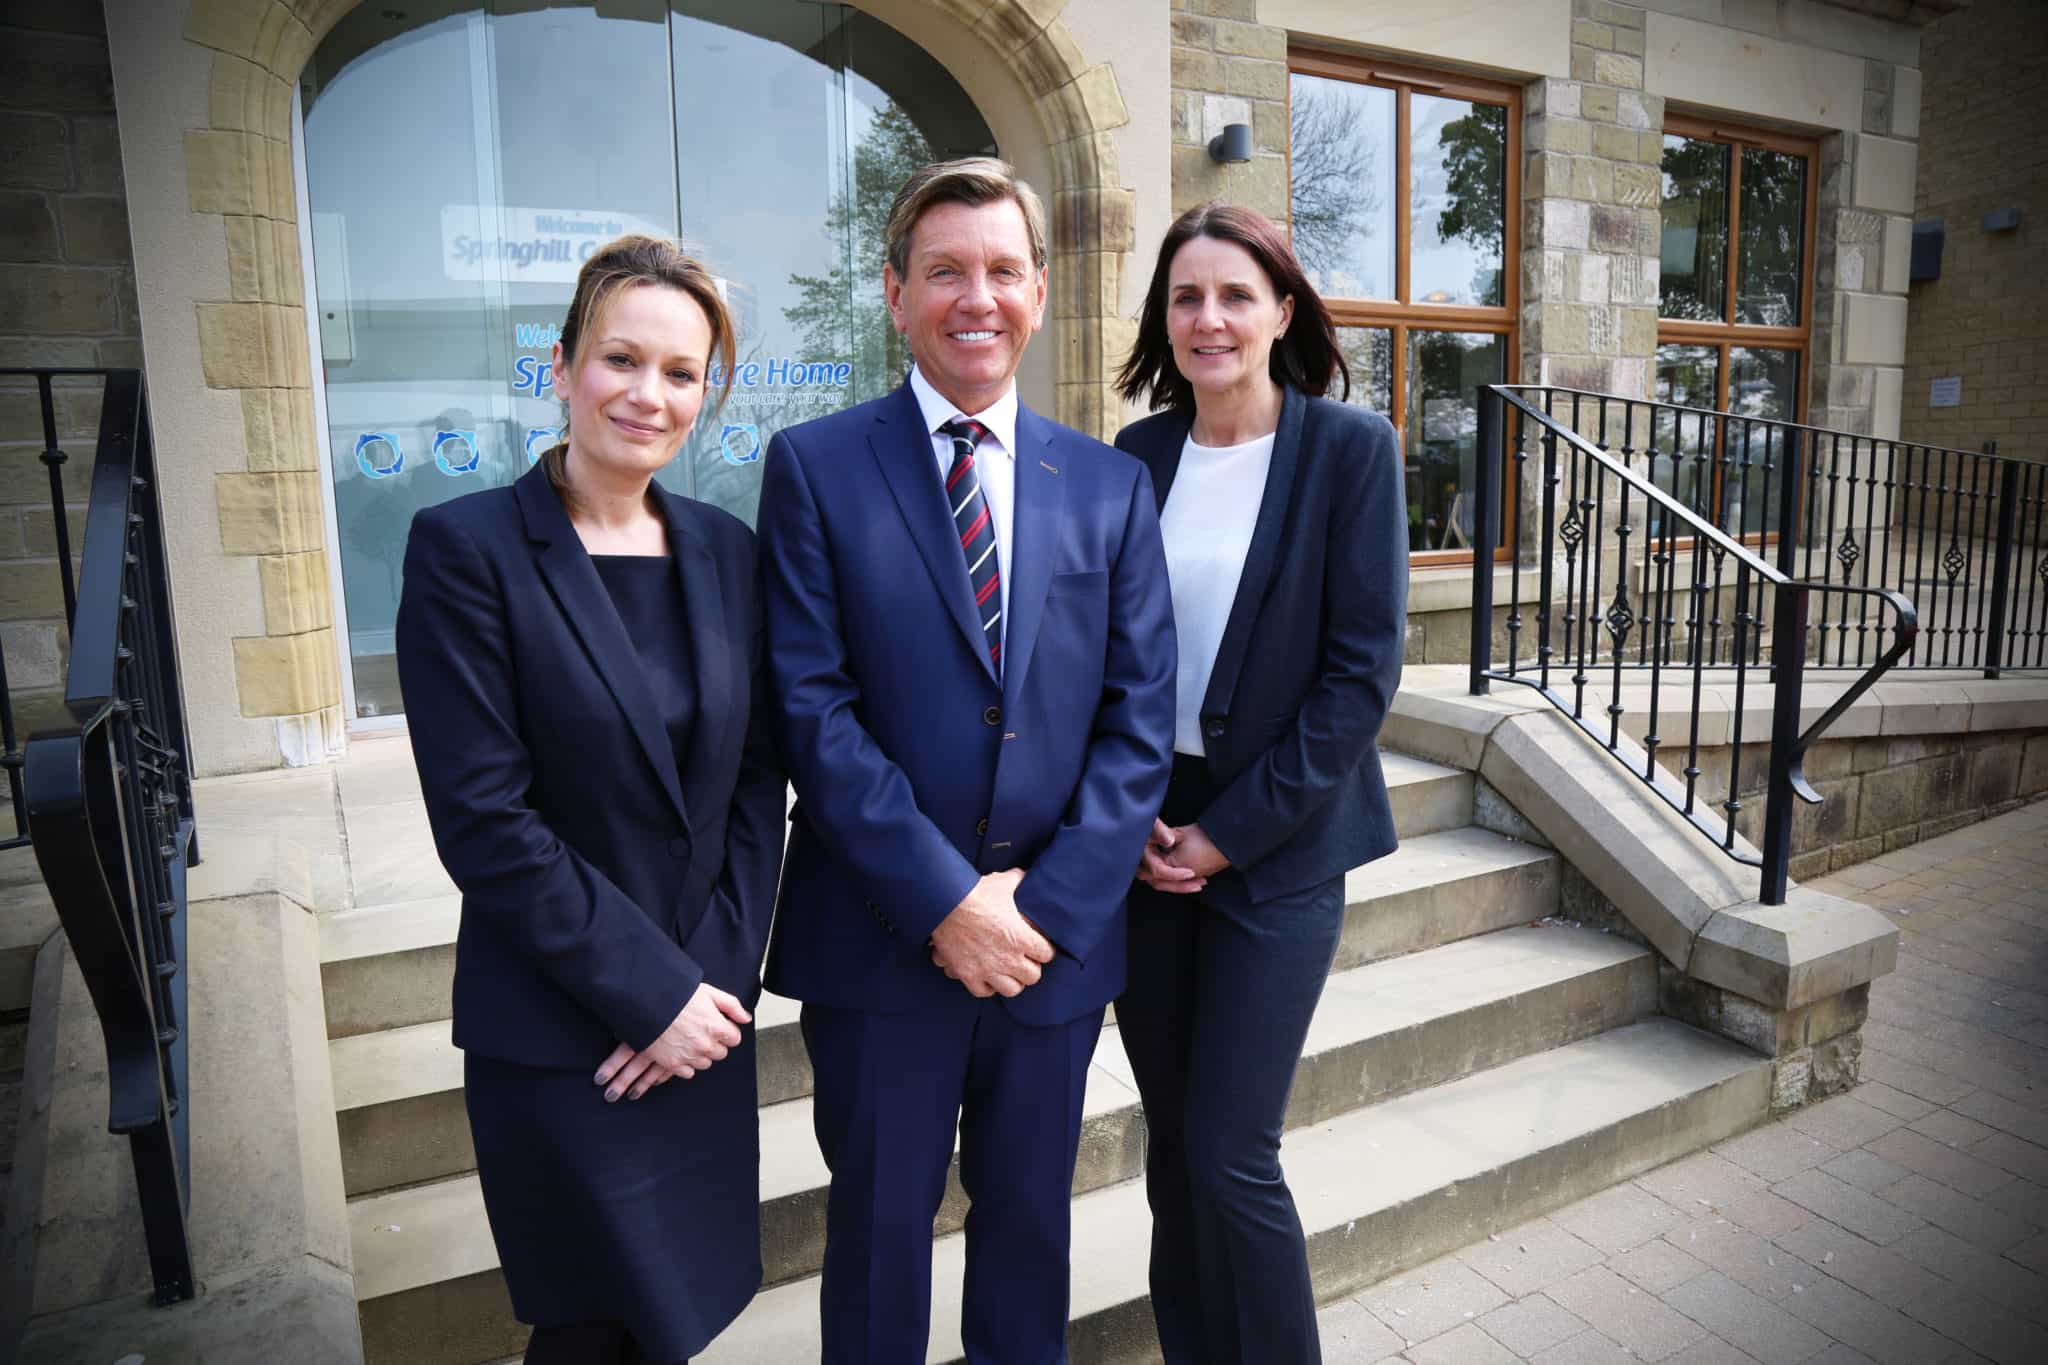 IIP North Springhill Care Group Accrington